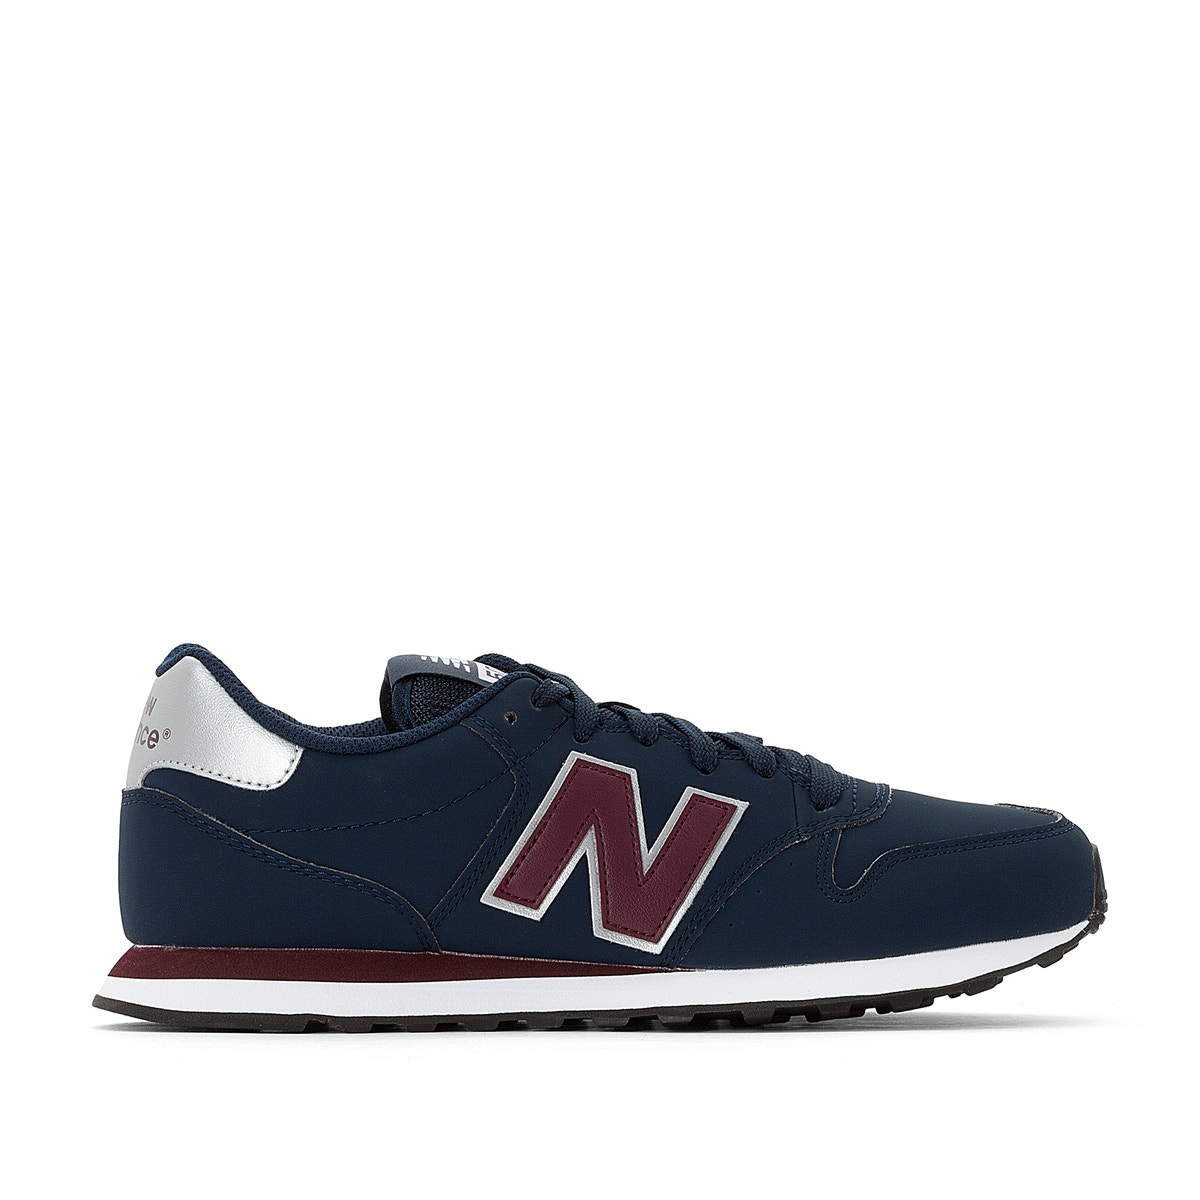 New Balance - New Balance Sneakers GM500NAB 350140600 - 5821 laredoute   ανδρικα   sneakers   low cut